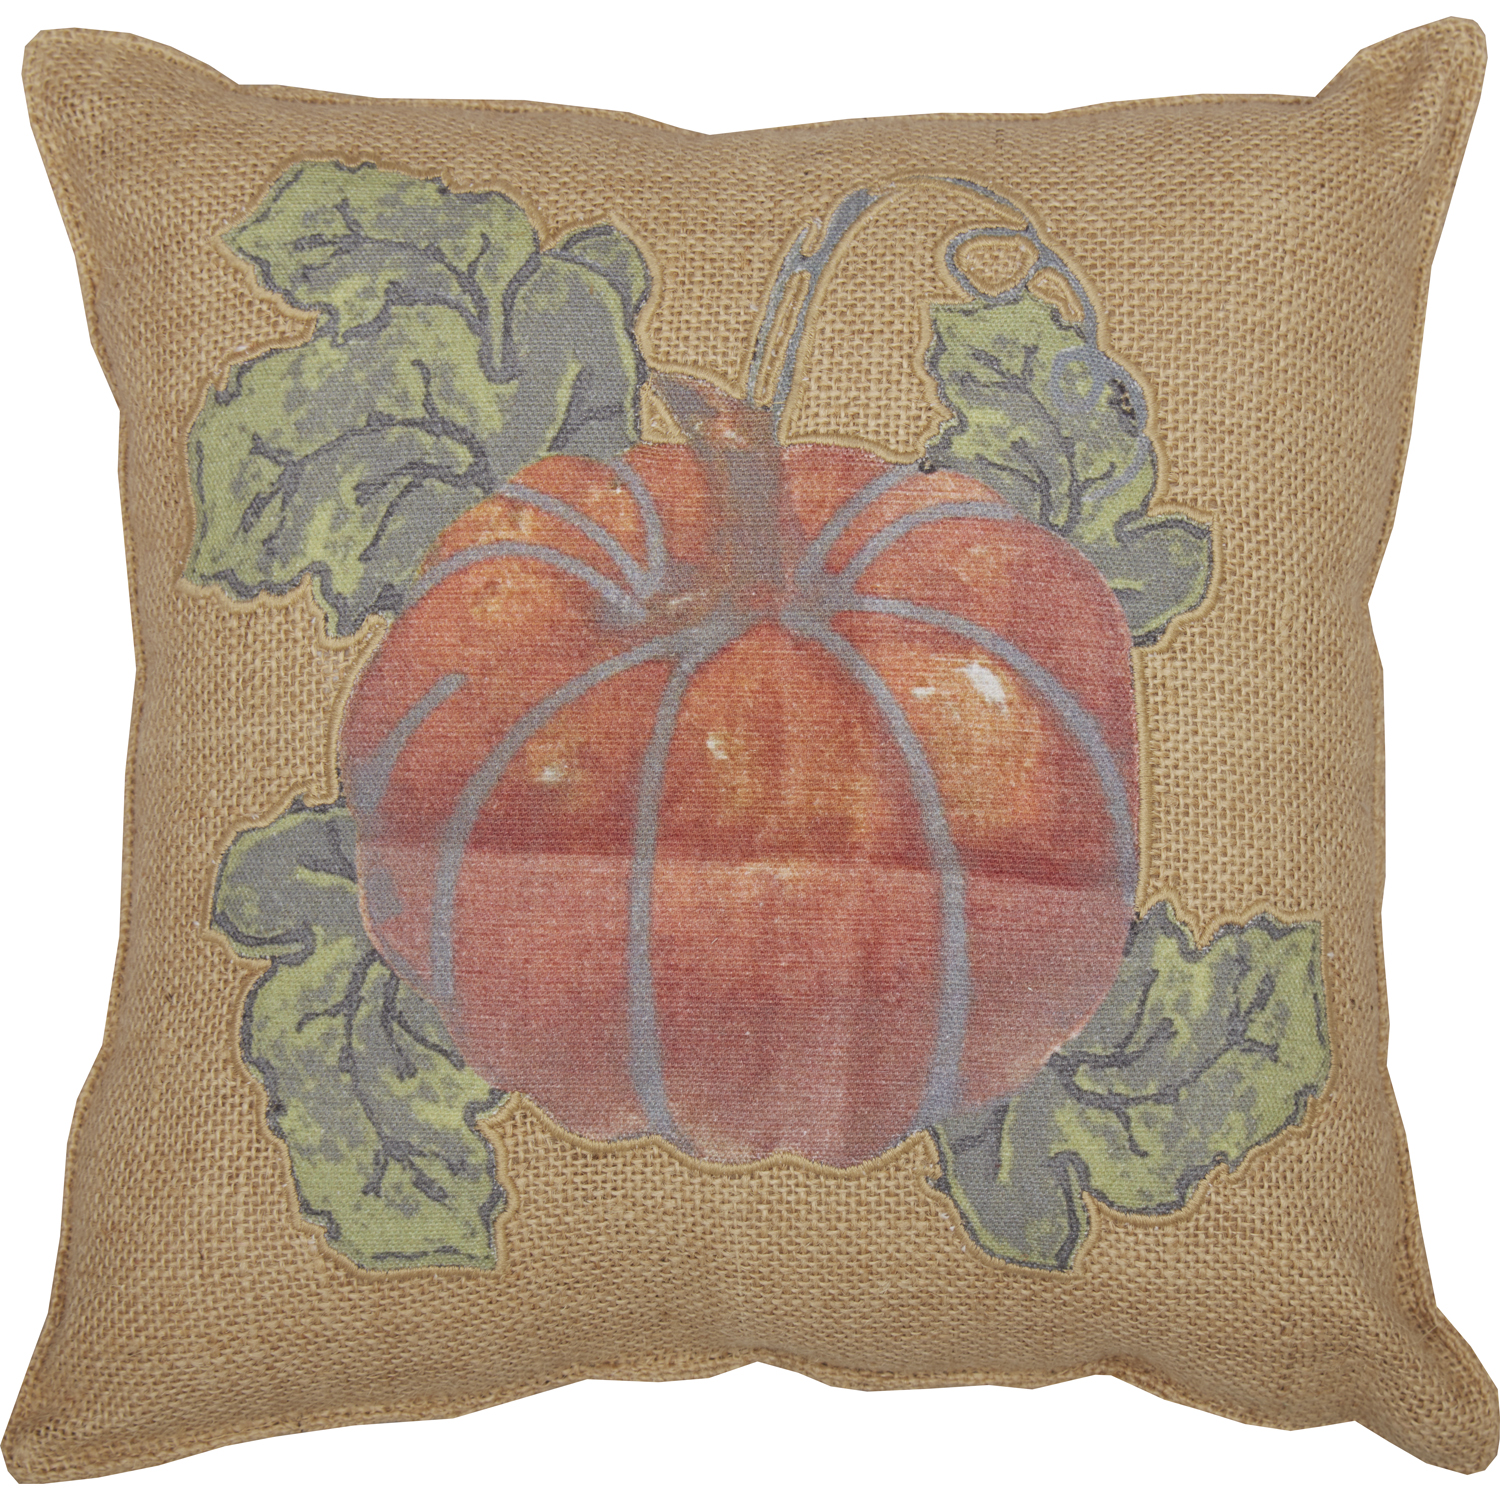 Jute Burlap Natural Harvest Garden Pumpkin Pillow 12x12